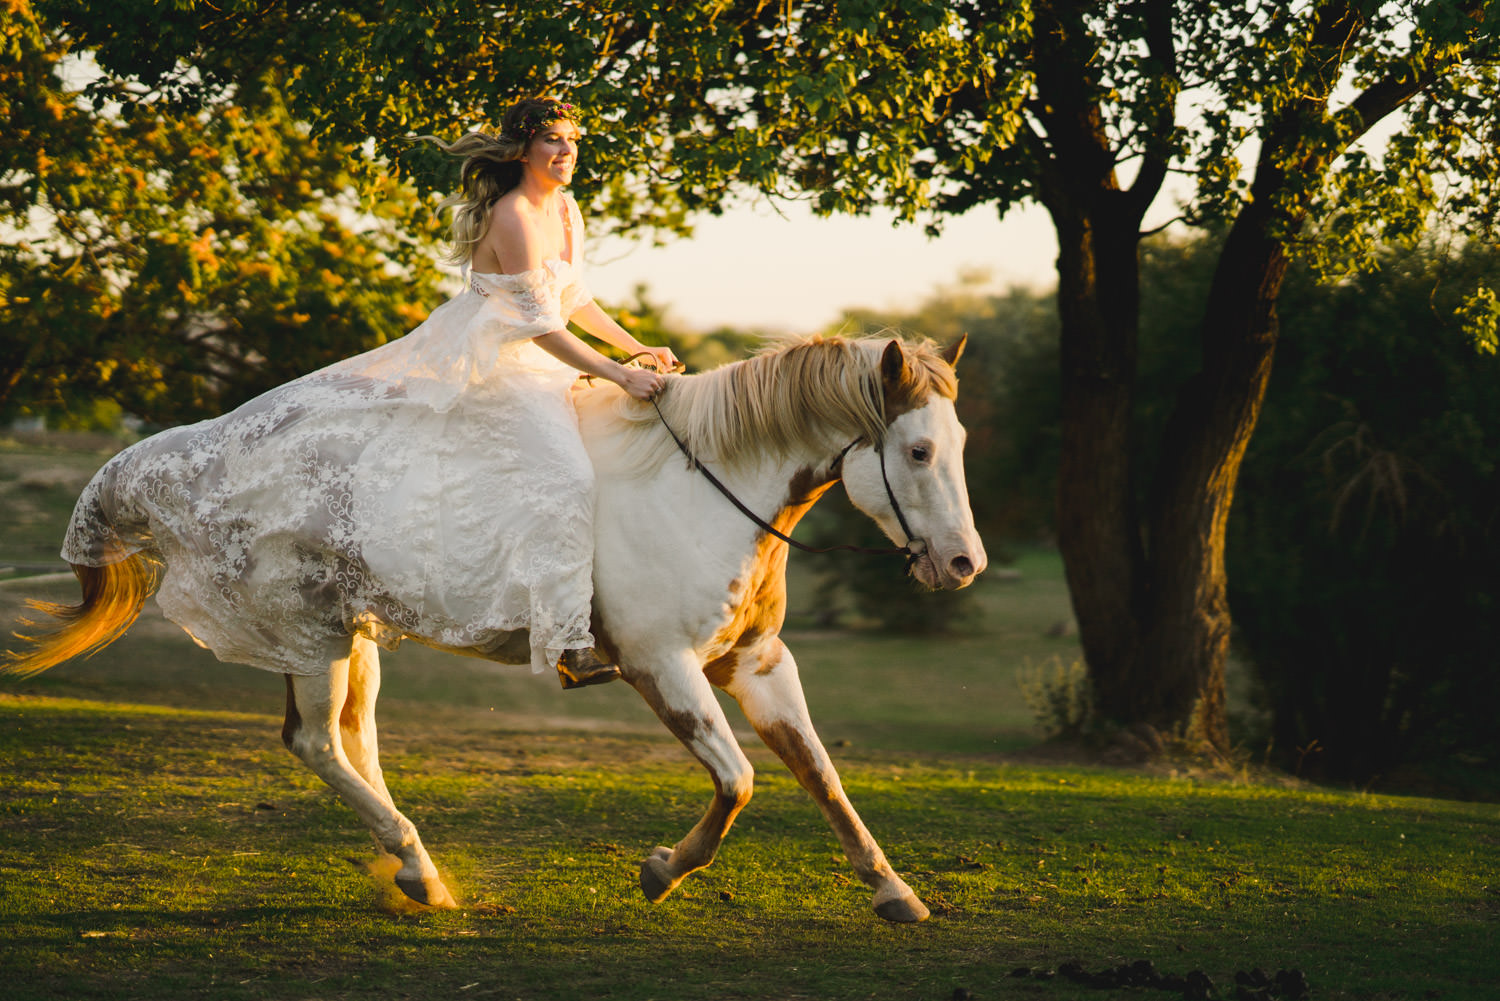 Equestrian bridal session horse galloping with bride in gown photo